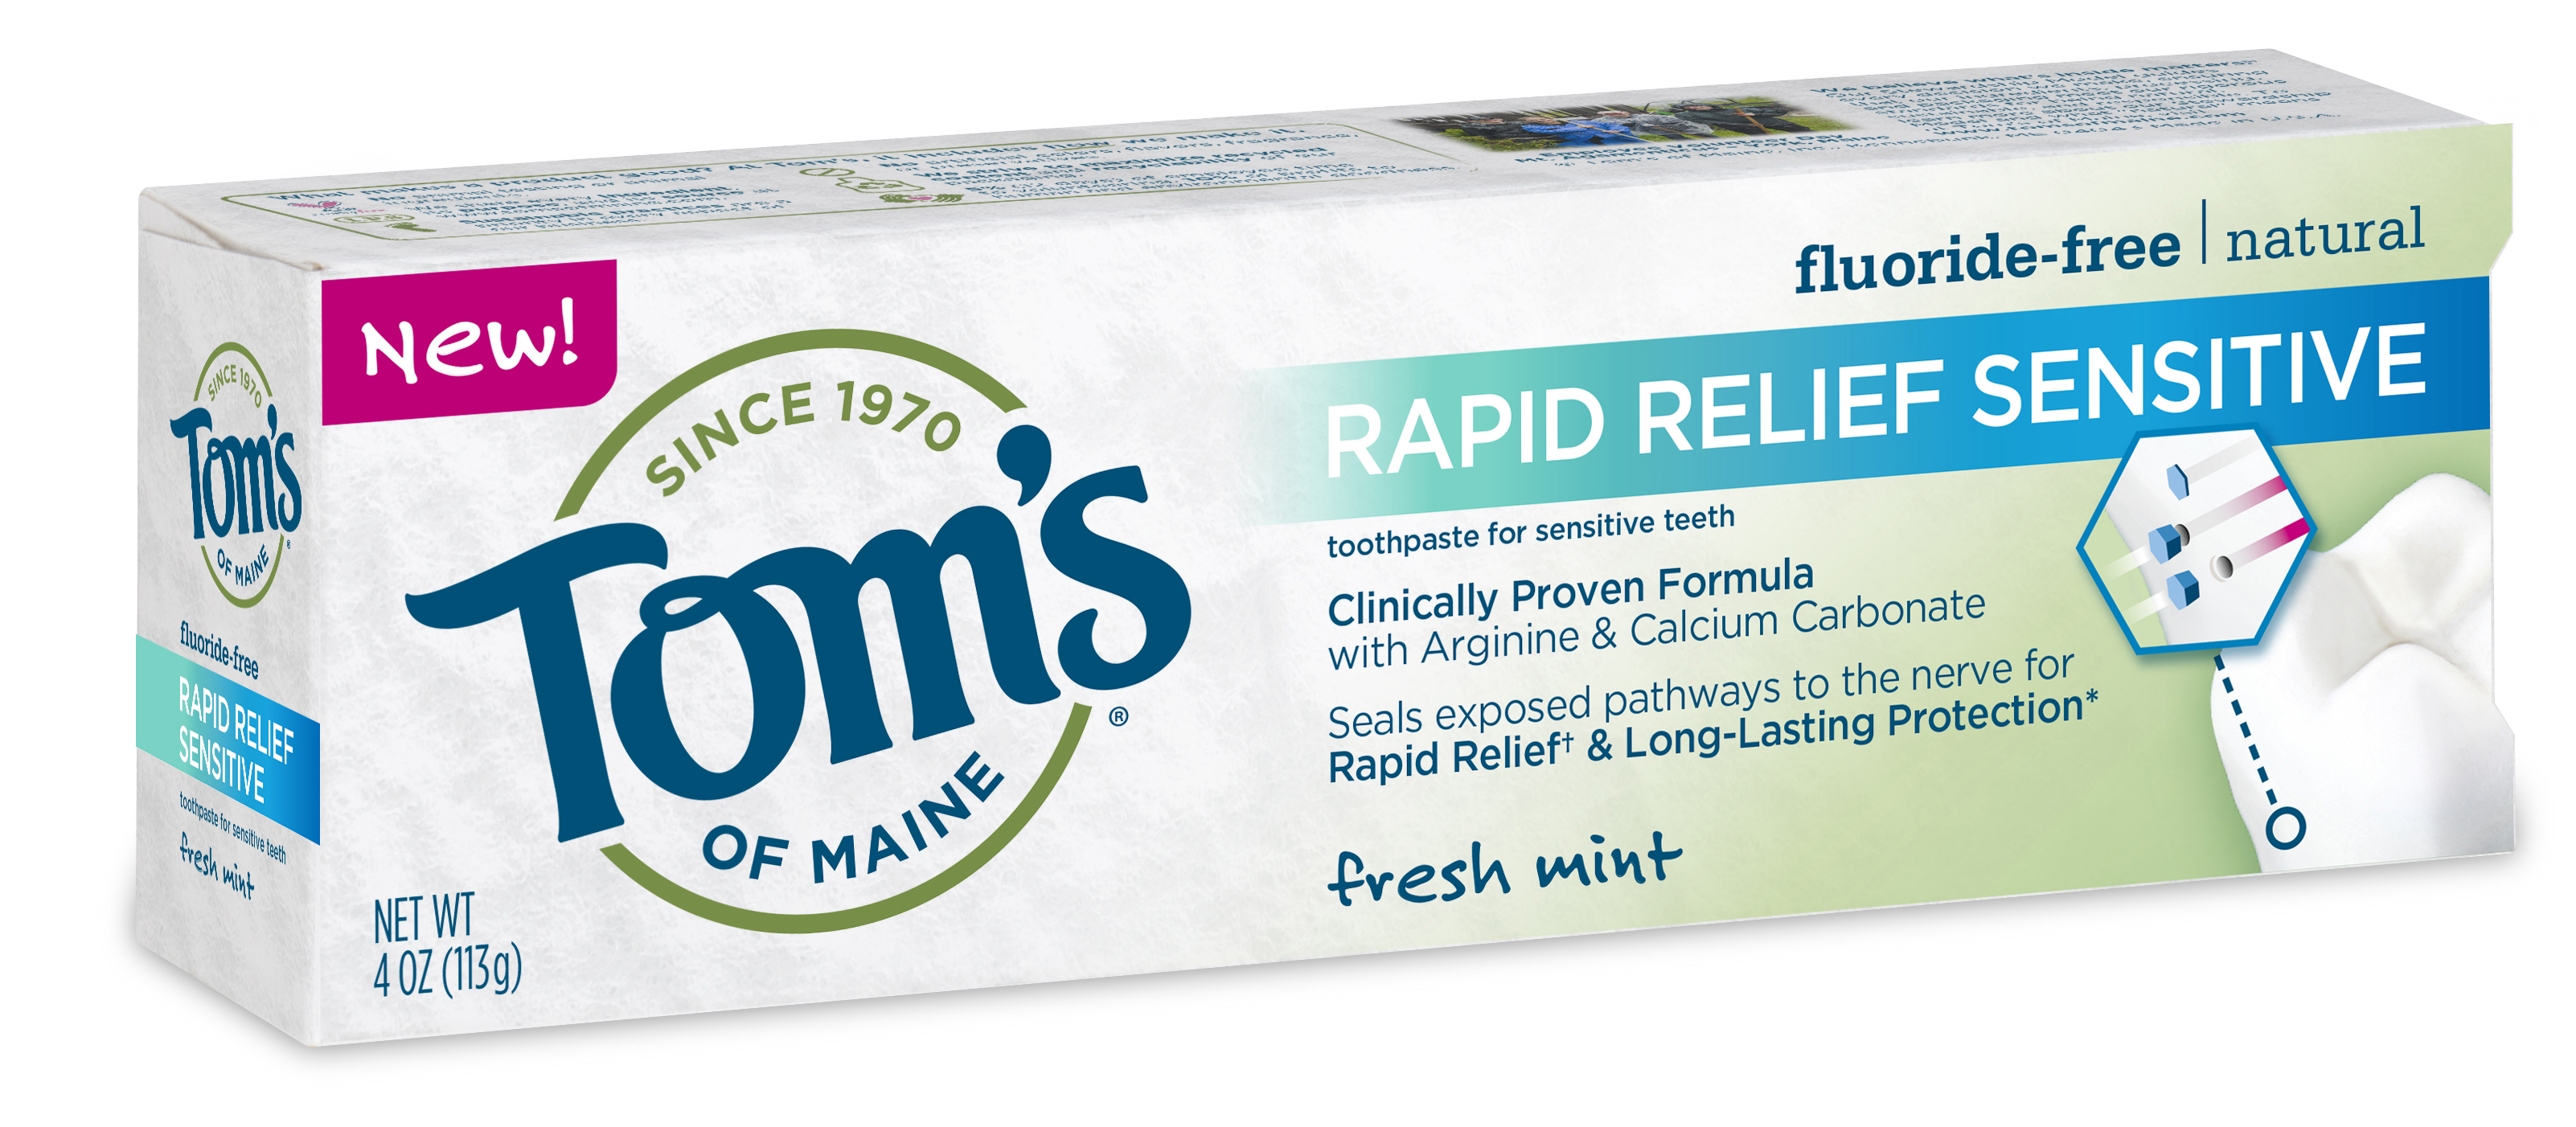 Senstive Tooth Relief in 60 Seconds With Tom's Of Maine © www.roastedbeanz.com #Reliefin60 [AD] #Activate